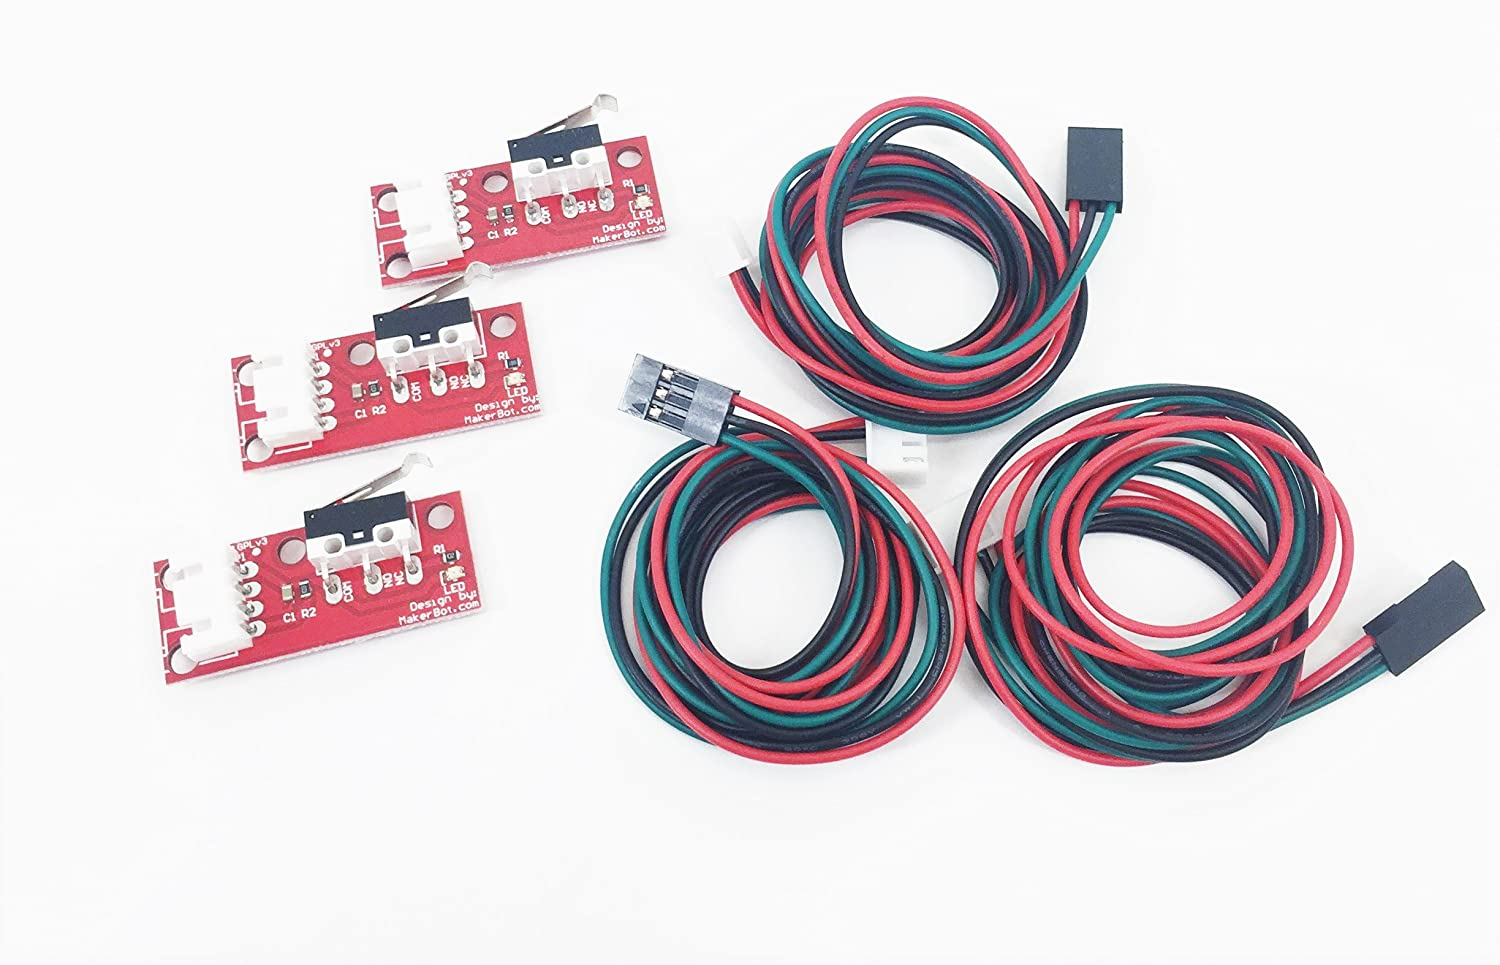 [REPRAPGURU] 3 PCS Mechanical End Stop w/Wires for Reprap 3D Printer and CNC Machine, Compatible with Ramps 1.4